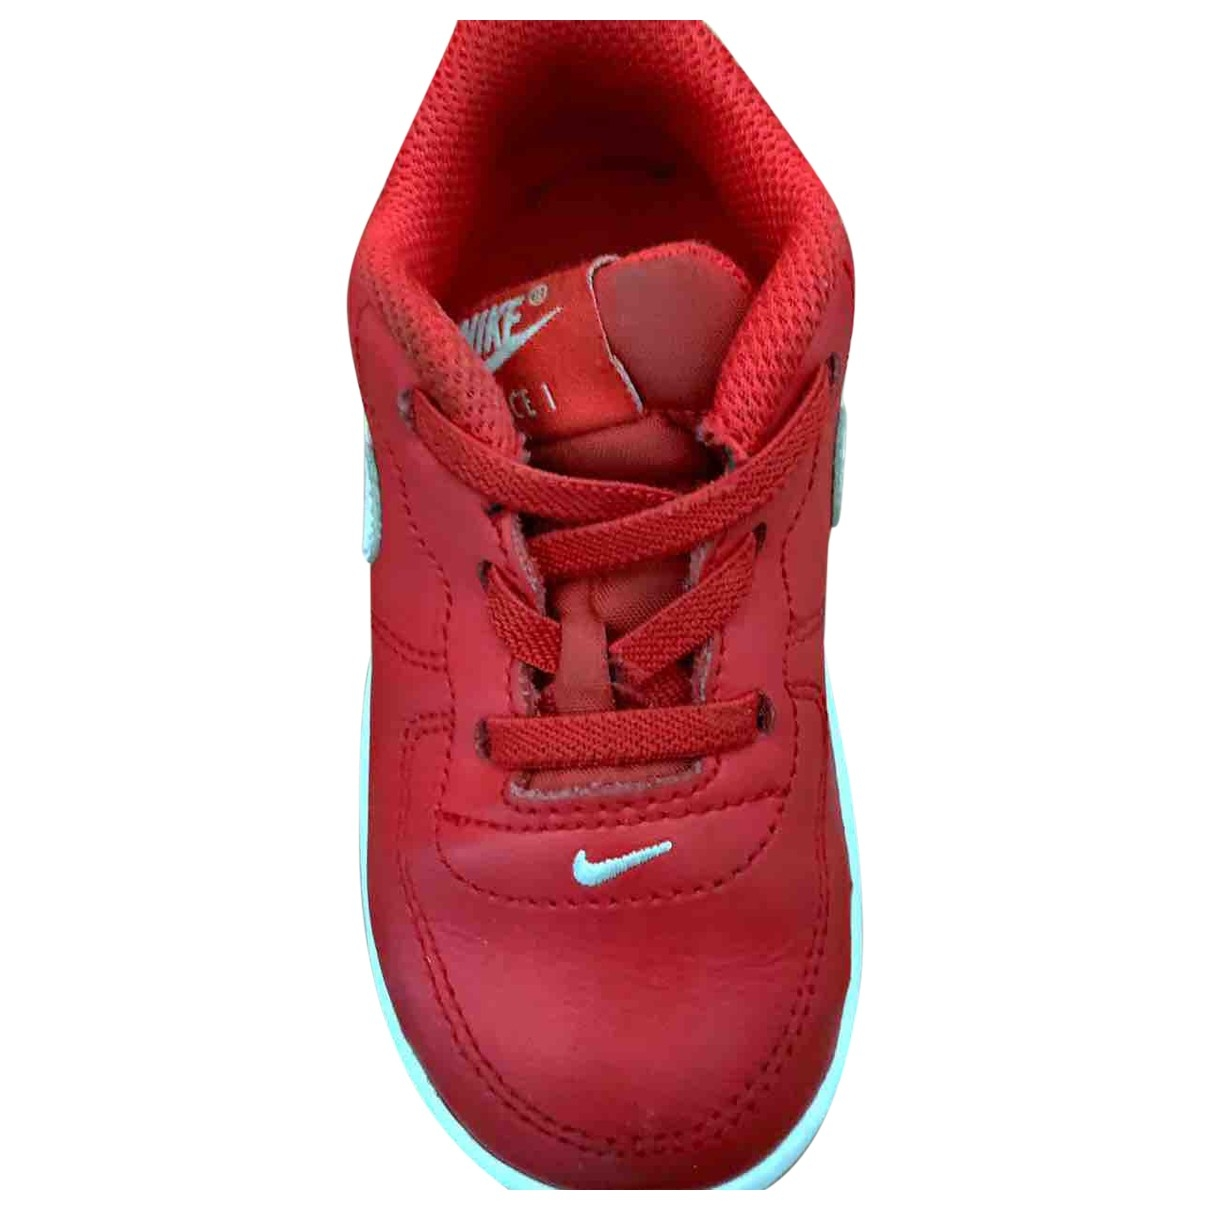 Nike Air Force 1 Red Leather Trainers for Kids 23 EU